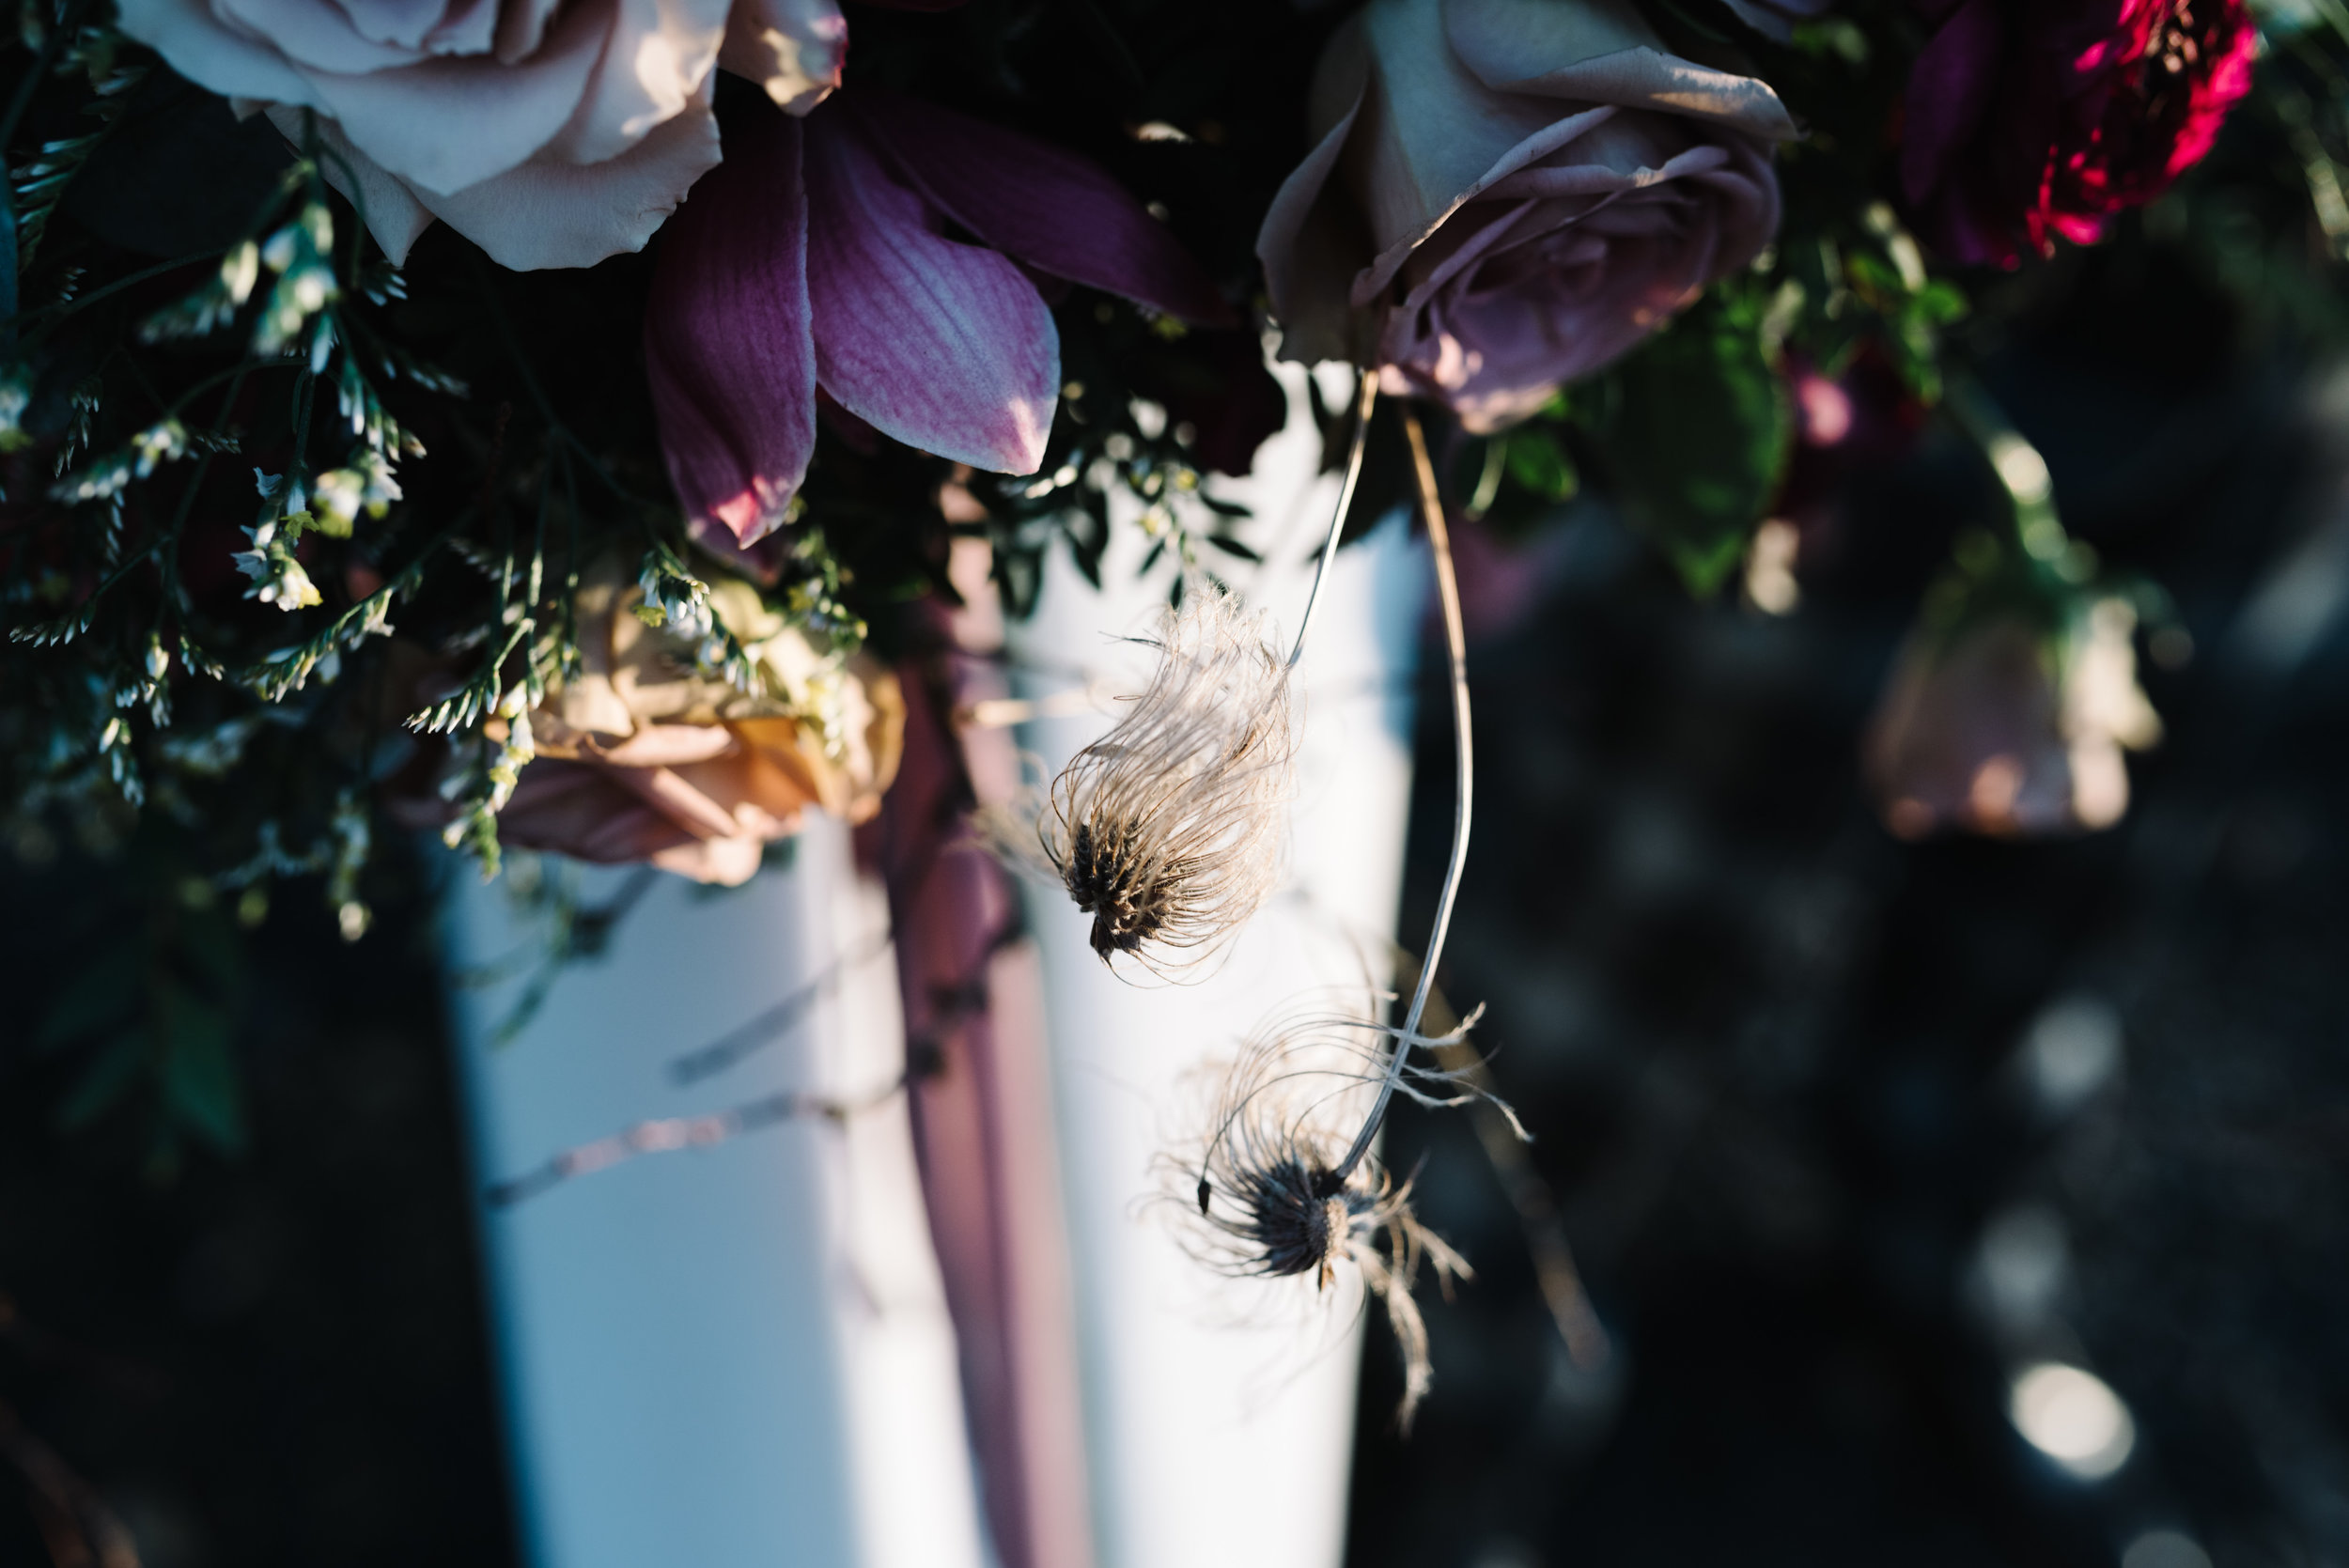 Modern Wedding Inspiration Shoot in Glasgow Brewery With a Frill Installation, Candy Floss and Neon 00314.jpg